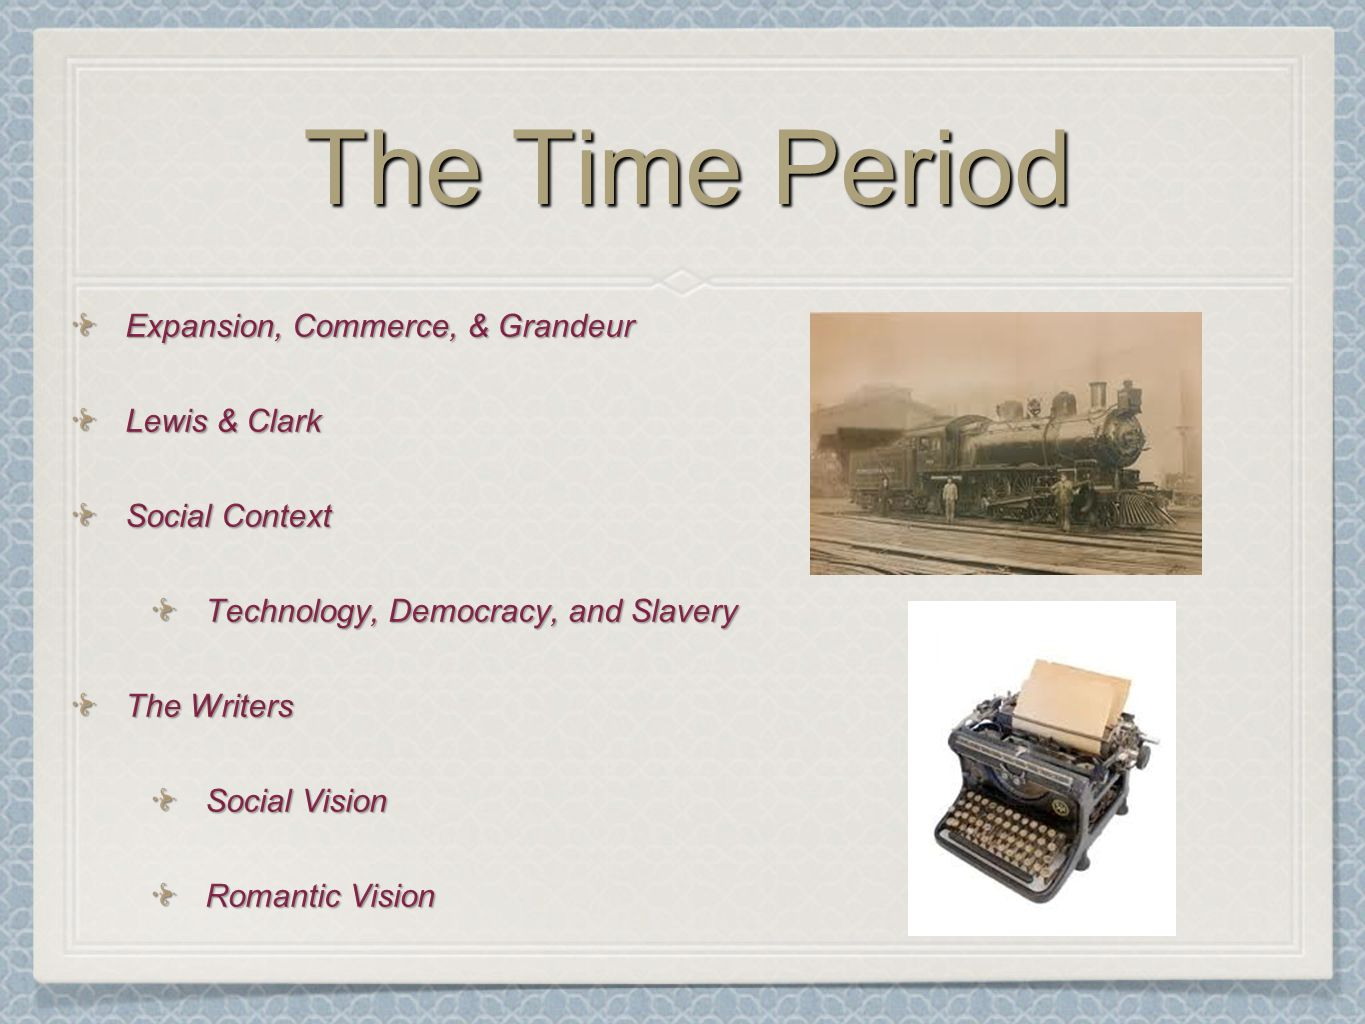 The Time Period Expansion, Commerce, & Grandeur Lewis & Clark Social Context Technology, Democracy, and Slavery The Writers Social Vision Romantic Vision